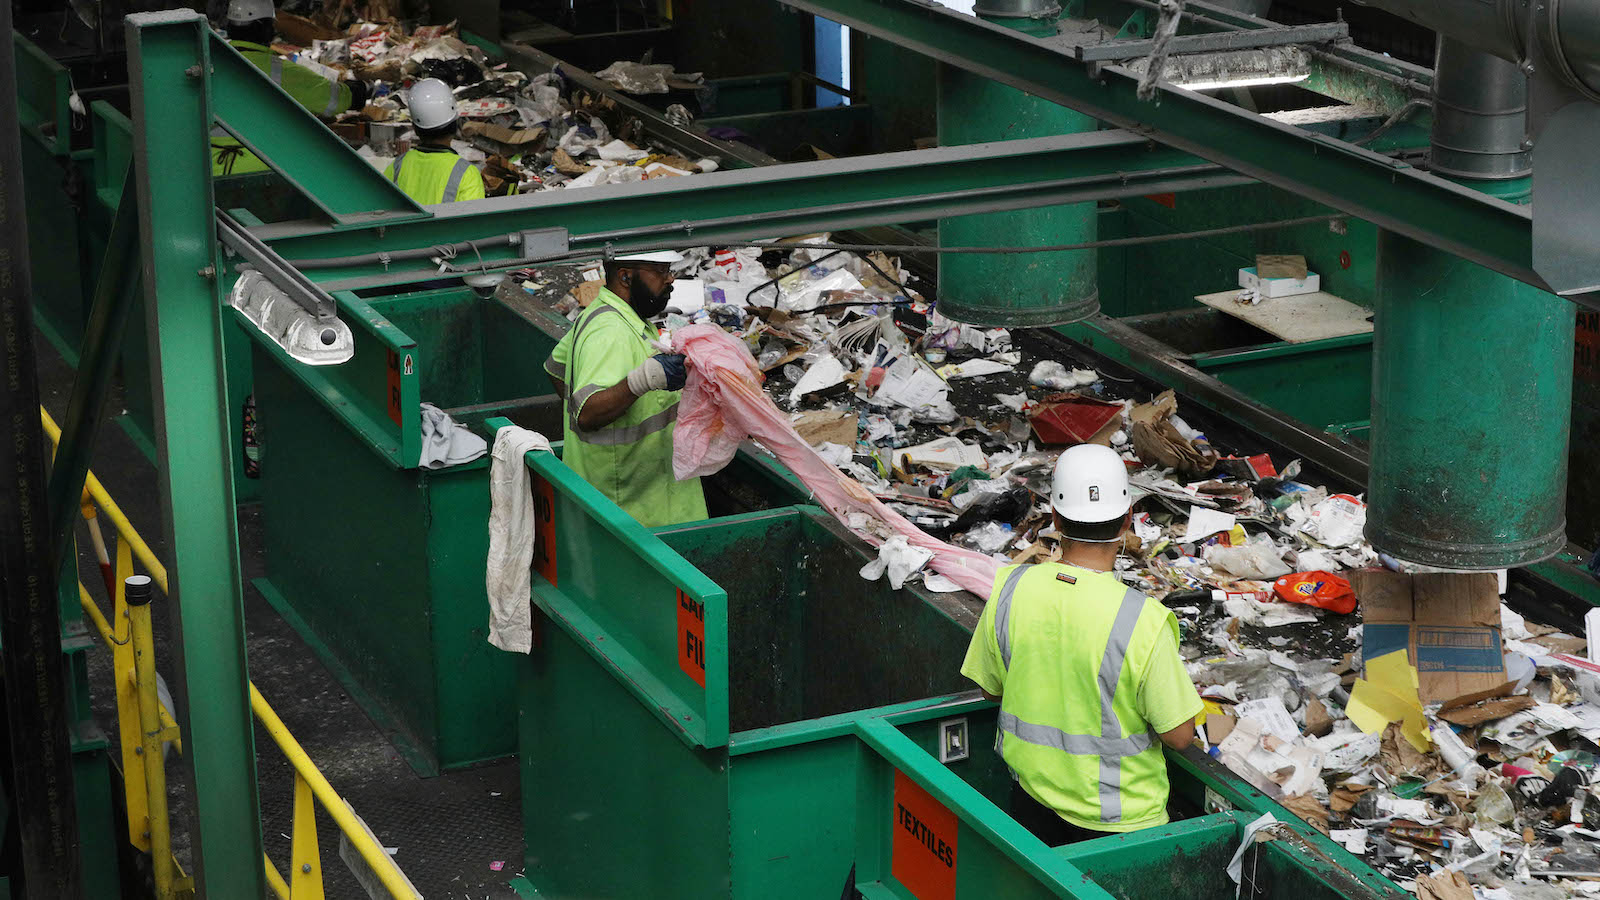 Workers sort plastic at a recycling center.